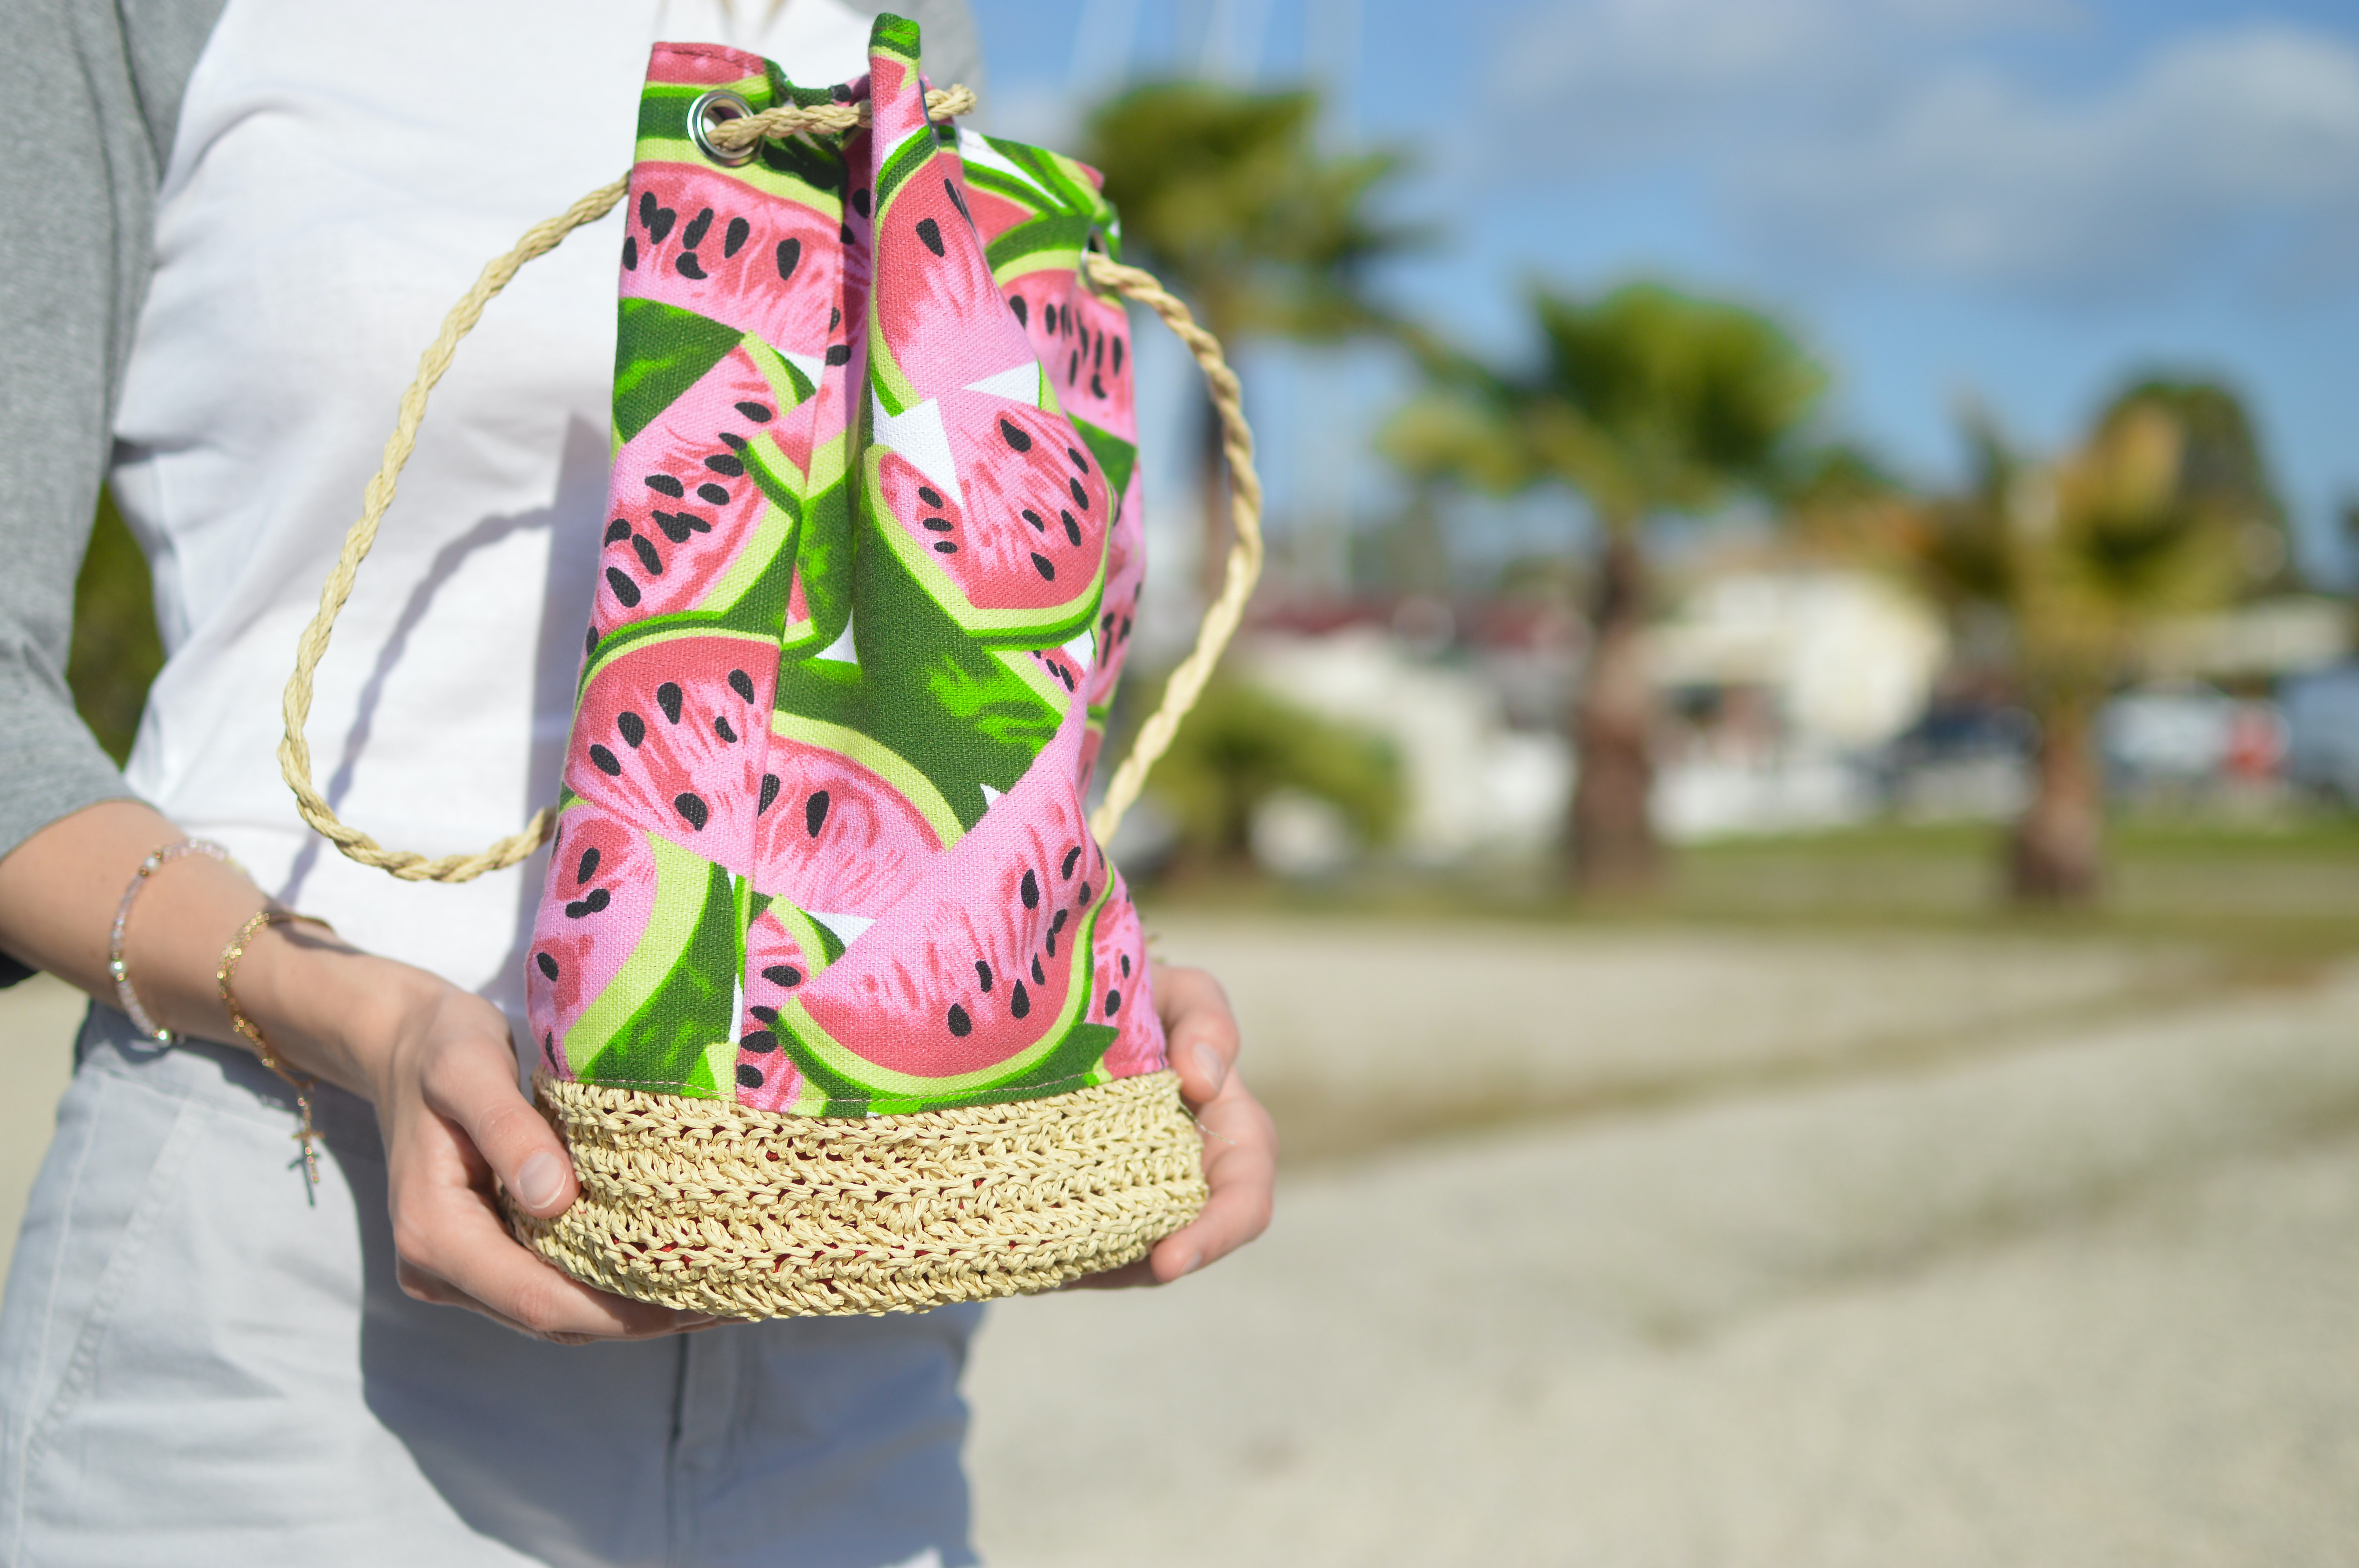 A person holds a purse printed with wedges of watermelon on the beach in Corfu